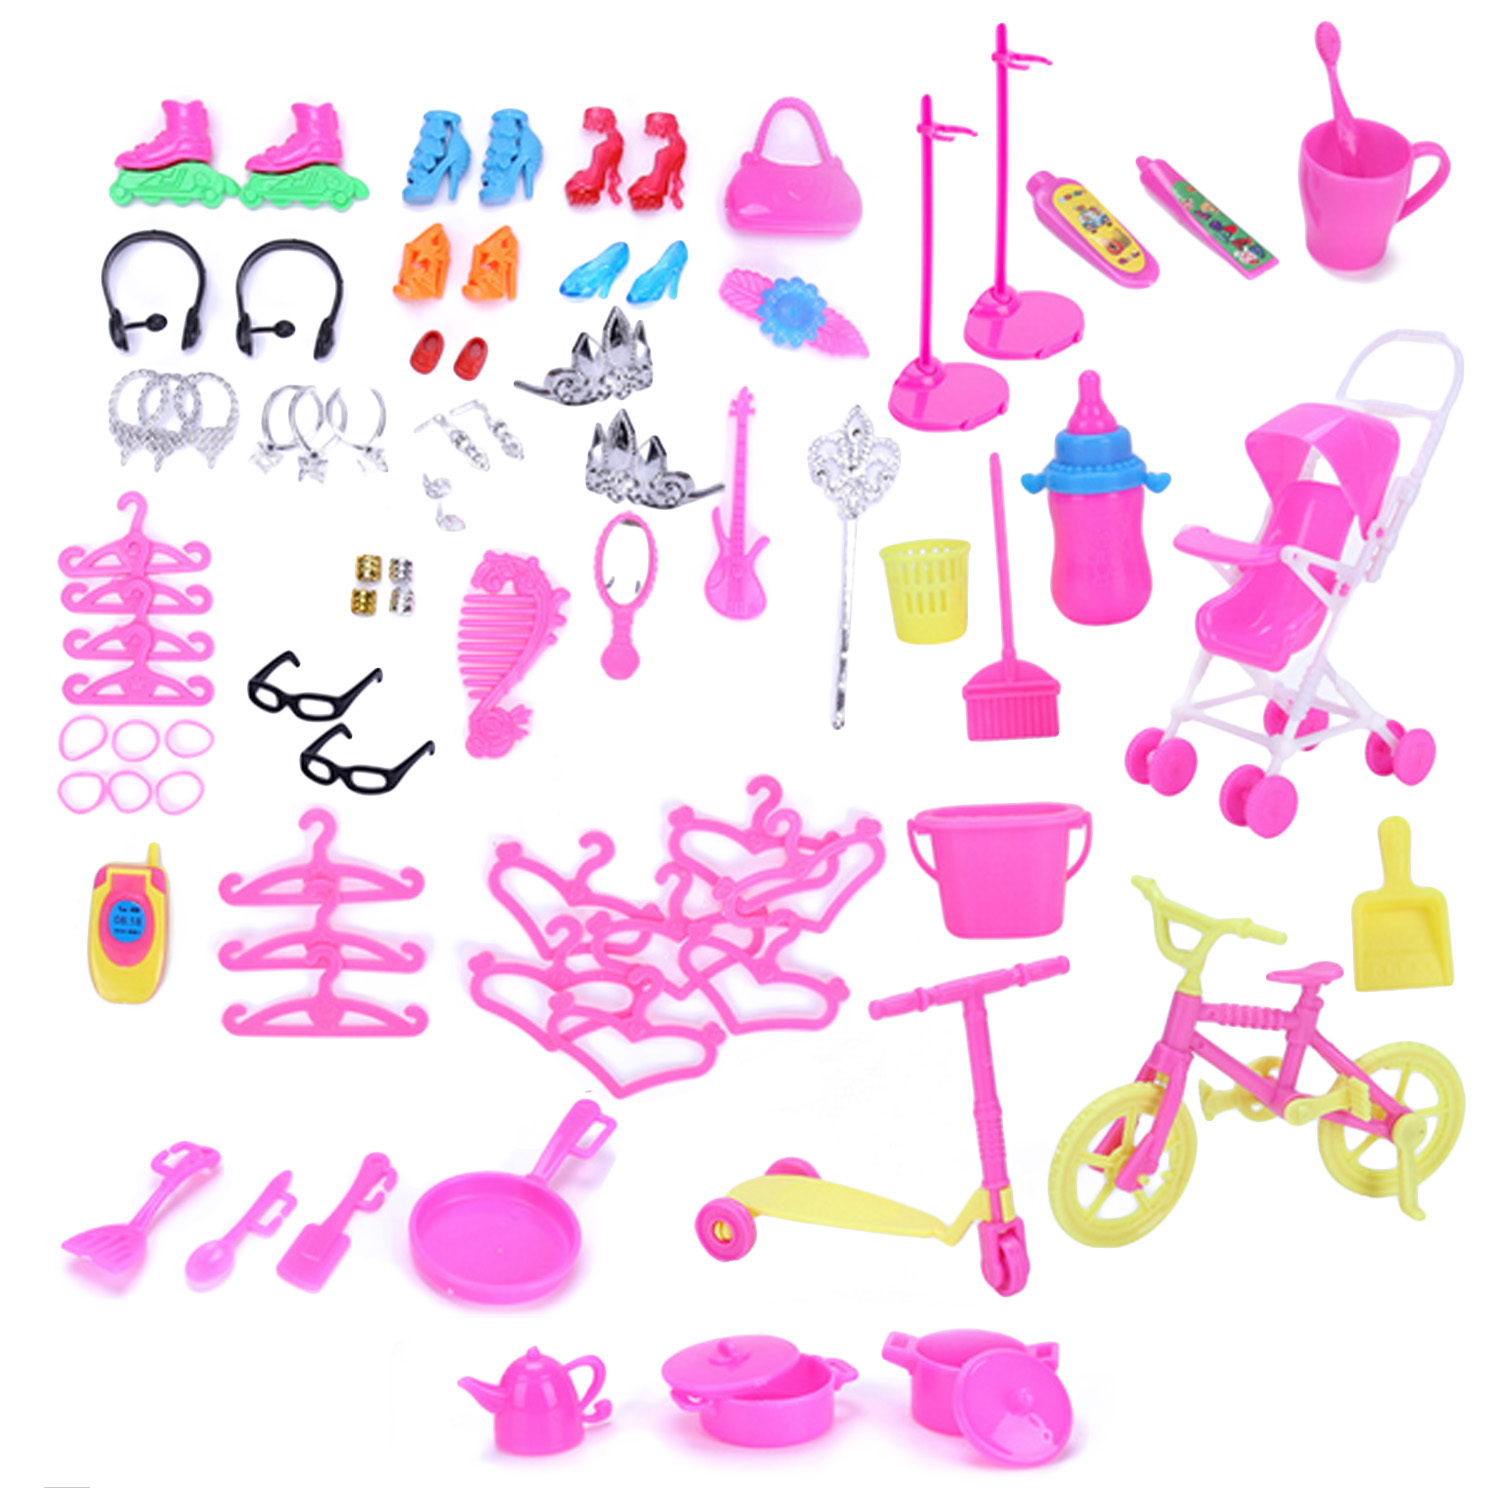 98 PCS Complete Doll Accessories Kit High Heels Kitchen Supplies Cleaning Tools Clothing ...